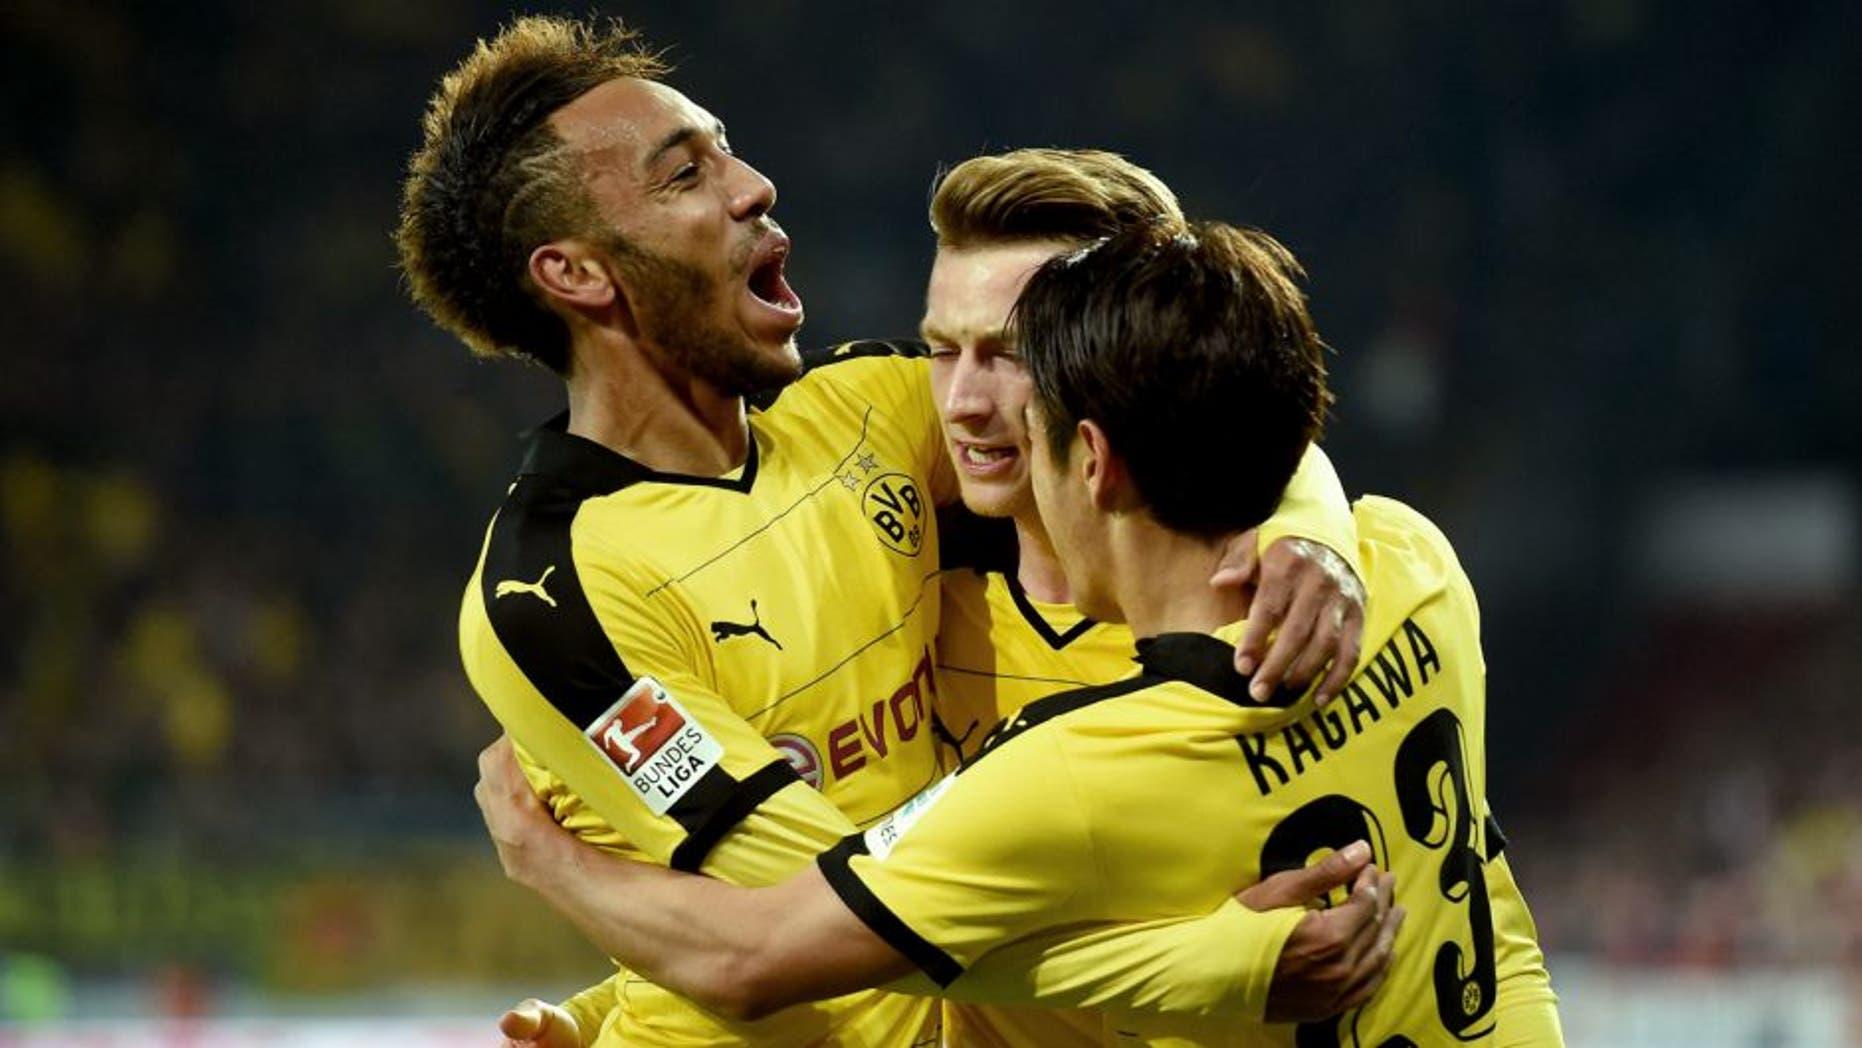 MAINZ, GERMANY - OCTOBER 16: Marco Reus of Dortmund celebrates with his team-mates after scoring his team's first goal during the Bundesliga match between 1. FSV Mainz 05 and Borussia Dortmund at Coface Arena on October 16, 2015 in Mainz, Germany. (Photo by Matthias Hangst/Bongarts/Getty Images)